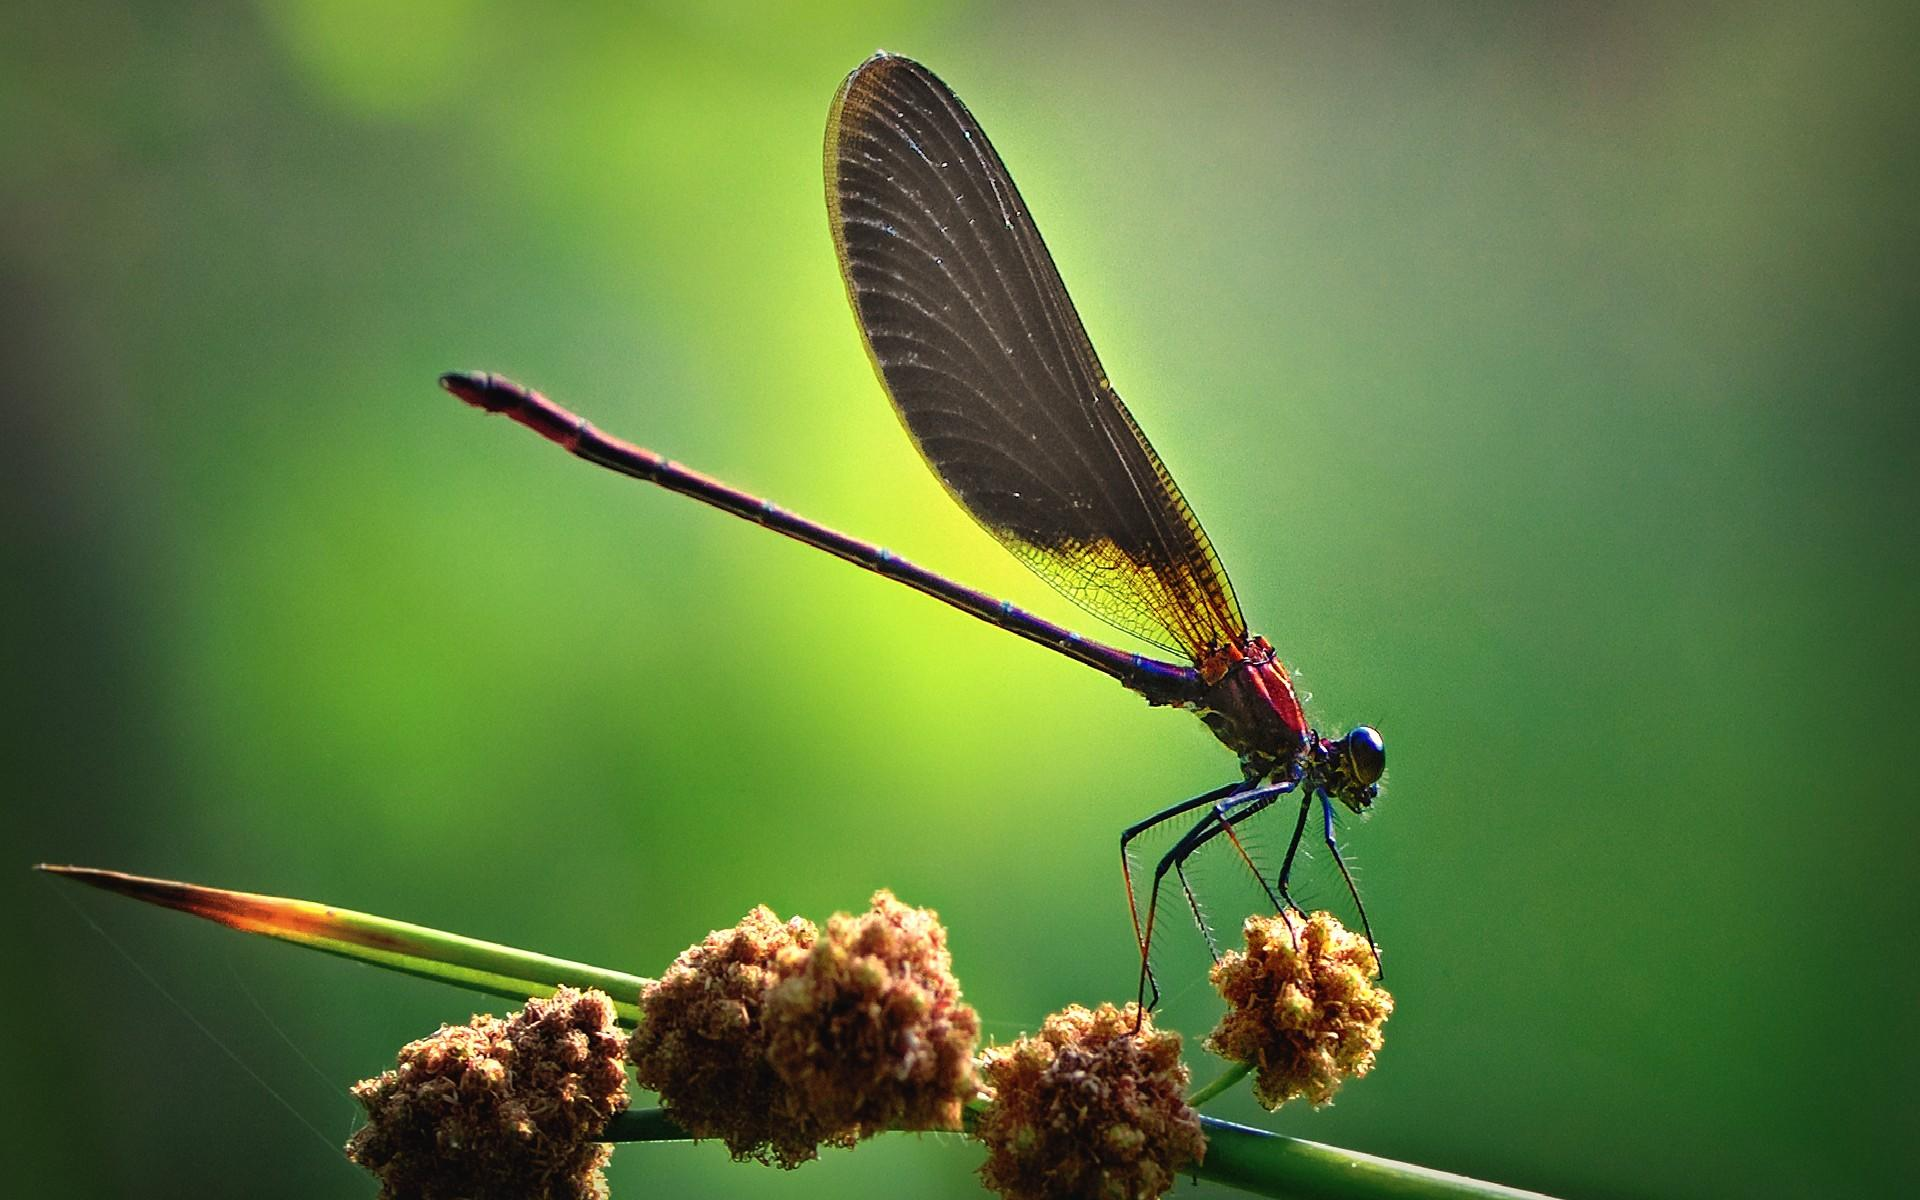 Cool Dragonfly Wallpaper Desktop h775292 Animals HD Wallpaper 1920x1200